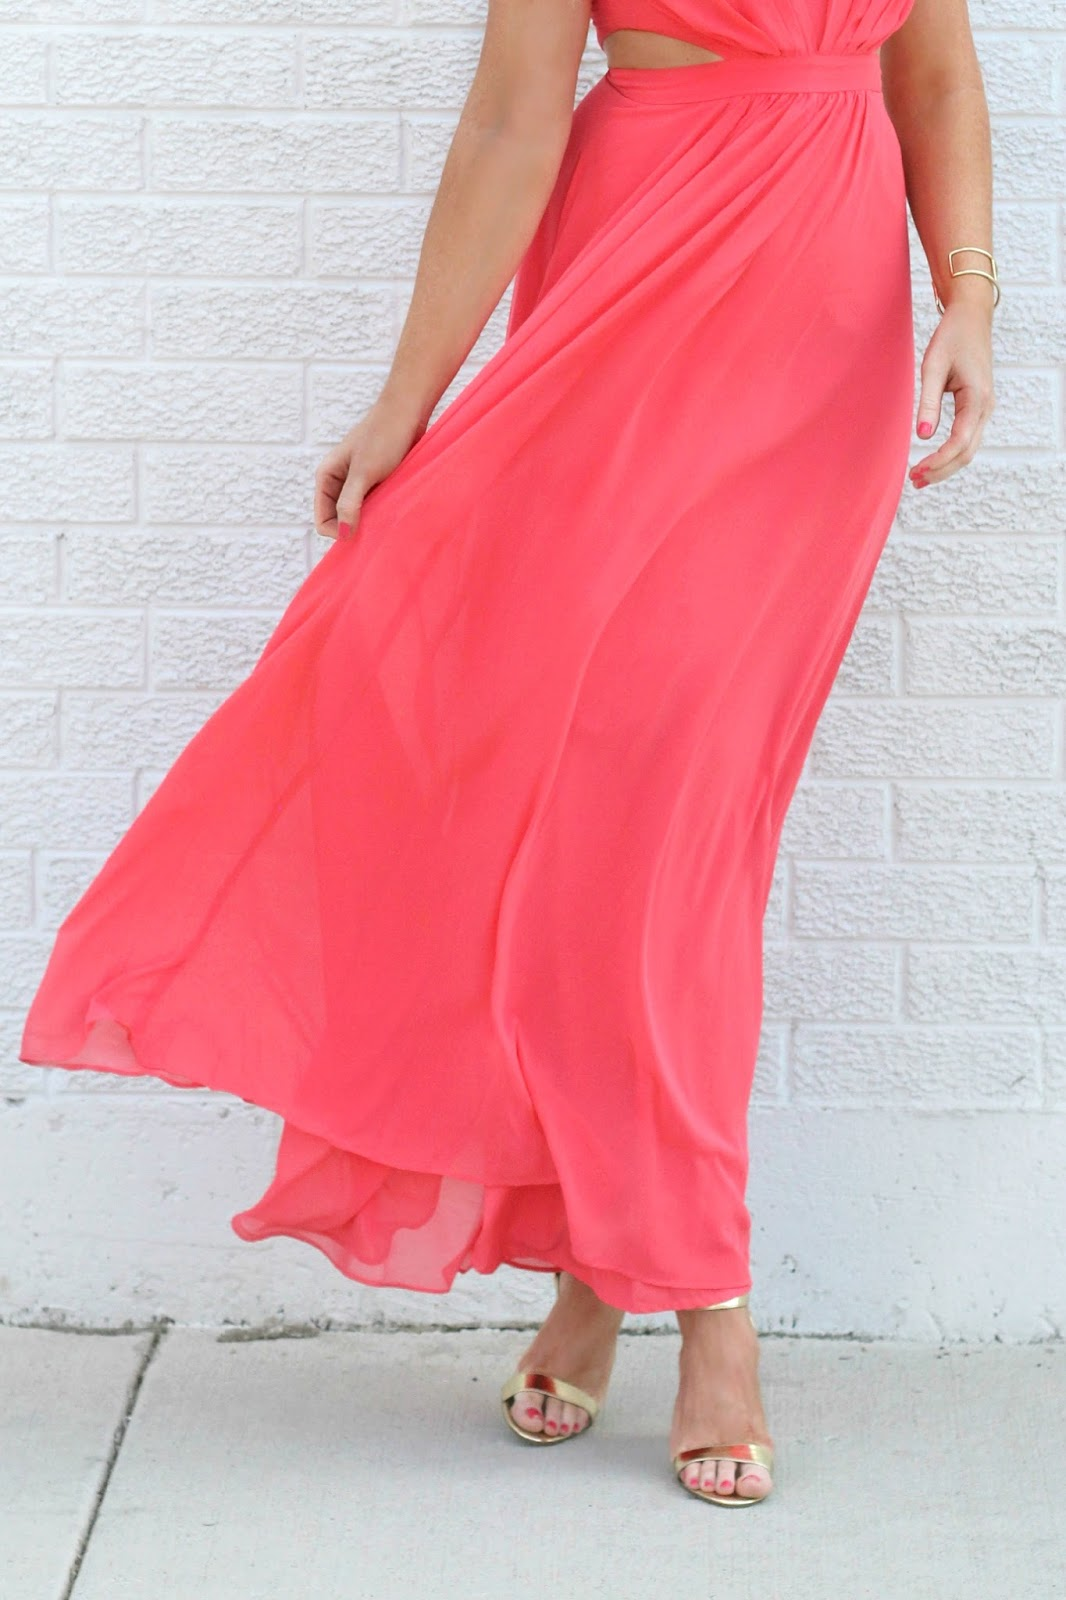 jcrew-metallic-heels-and-asos-red-maxi-dress